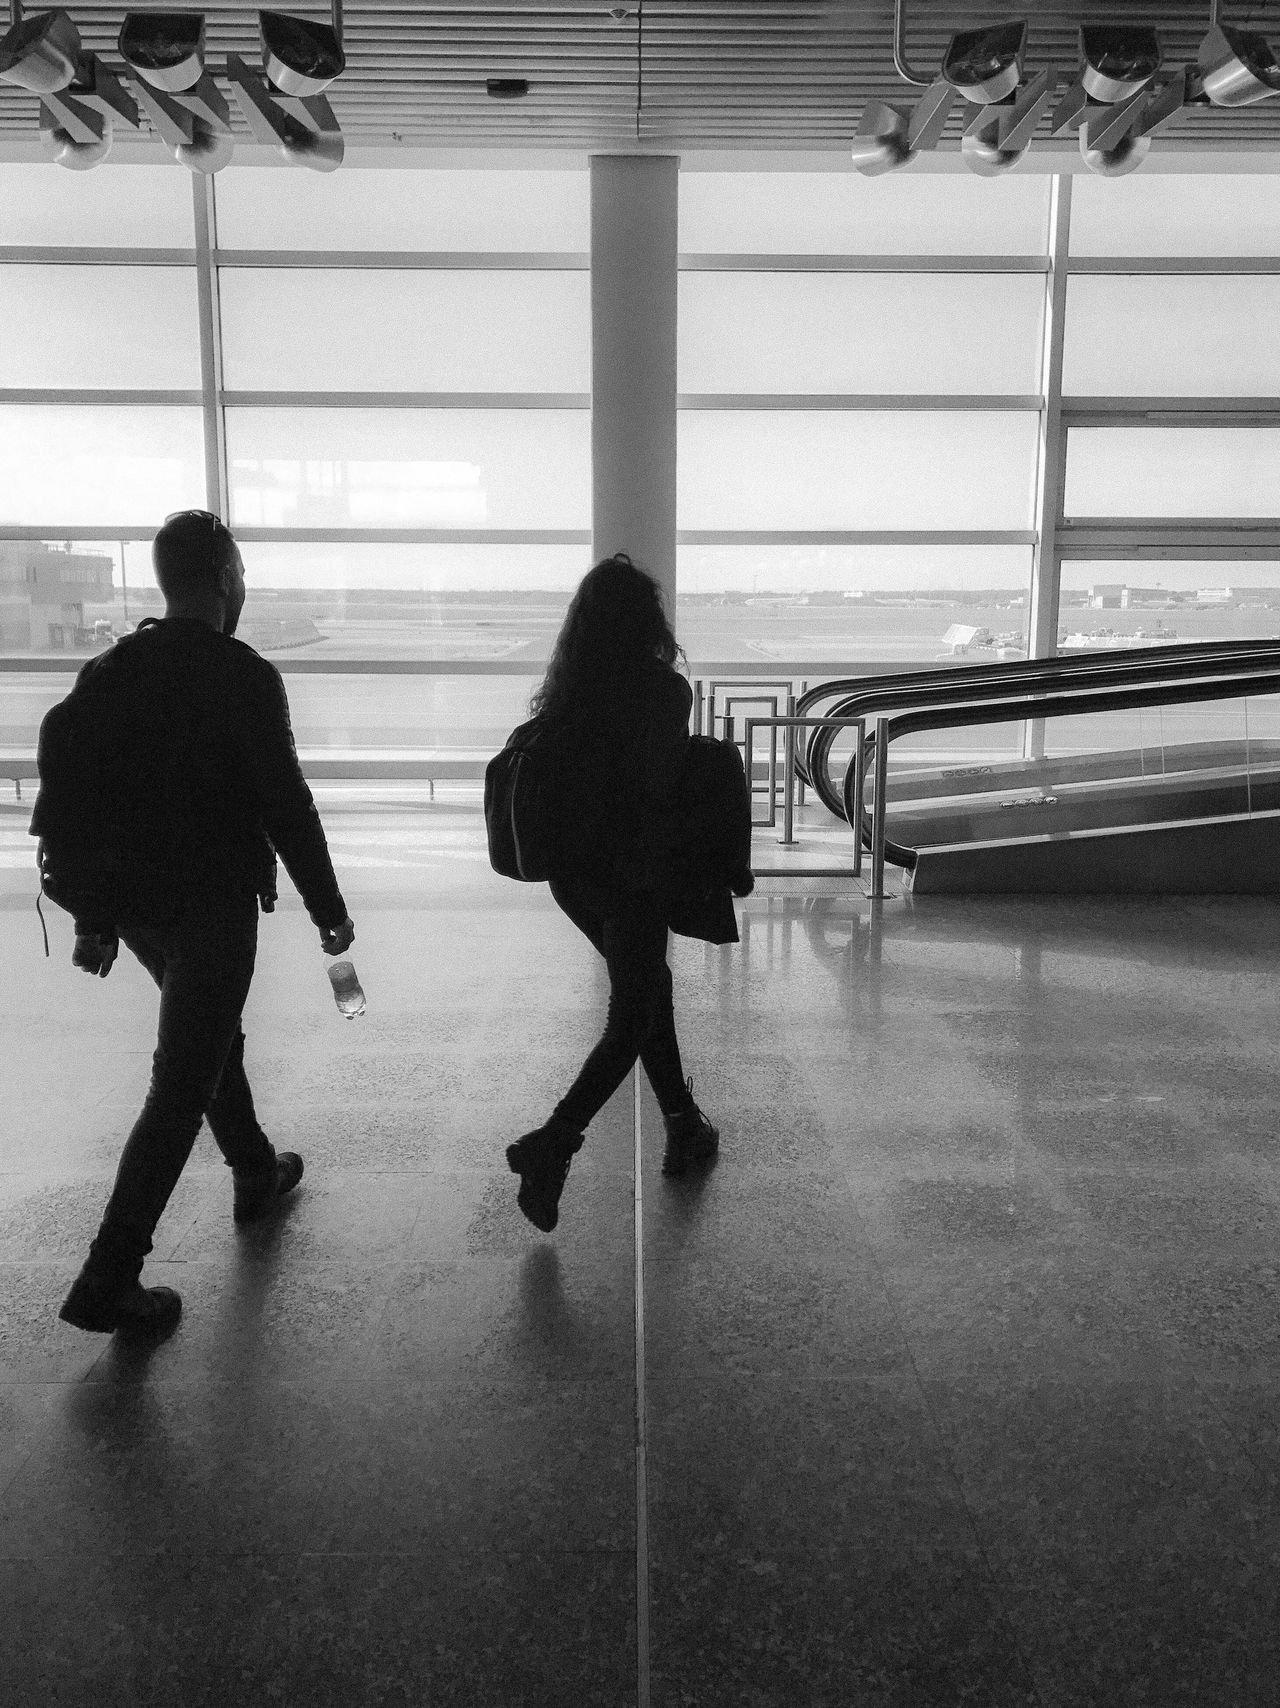 The Street Photographer - 2017 EyeEm Awards Indoors  Full Length Two People Real People Women Rear View Men Standing Airport Departure Area Adult Architecture People Day Adults Only Bnw